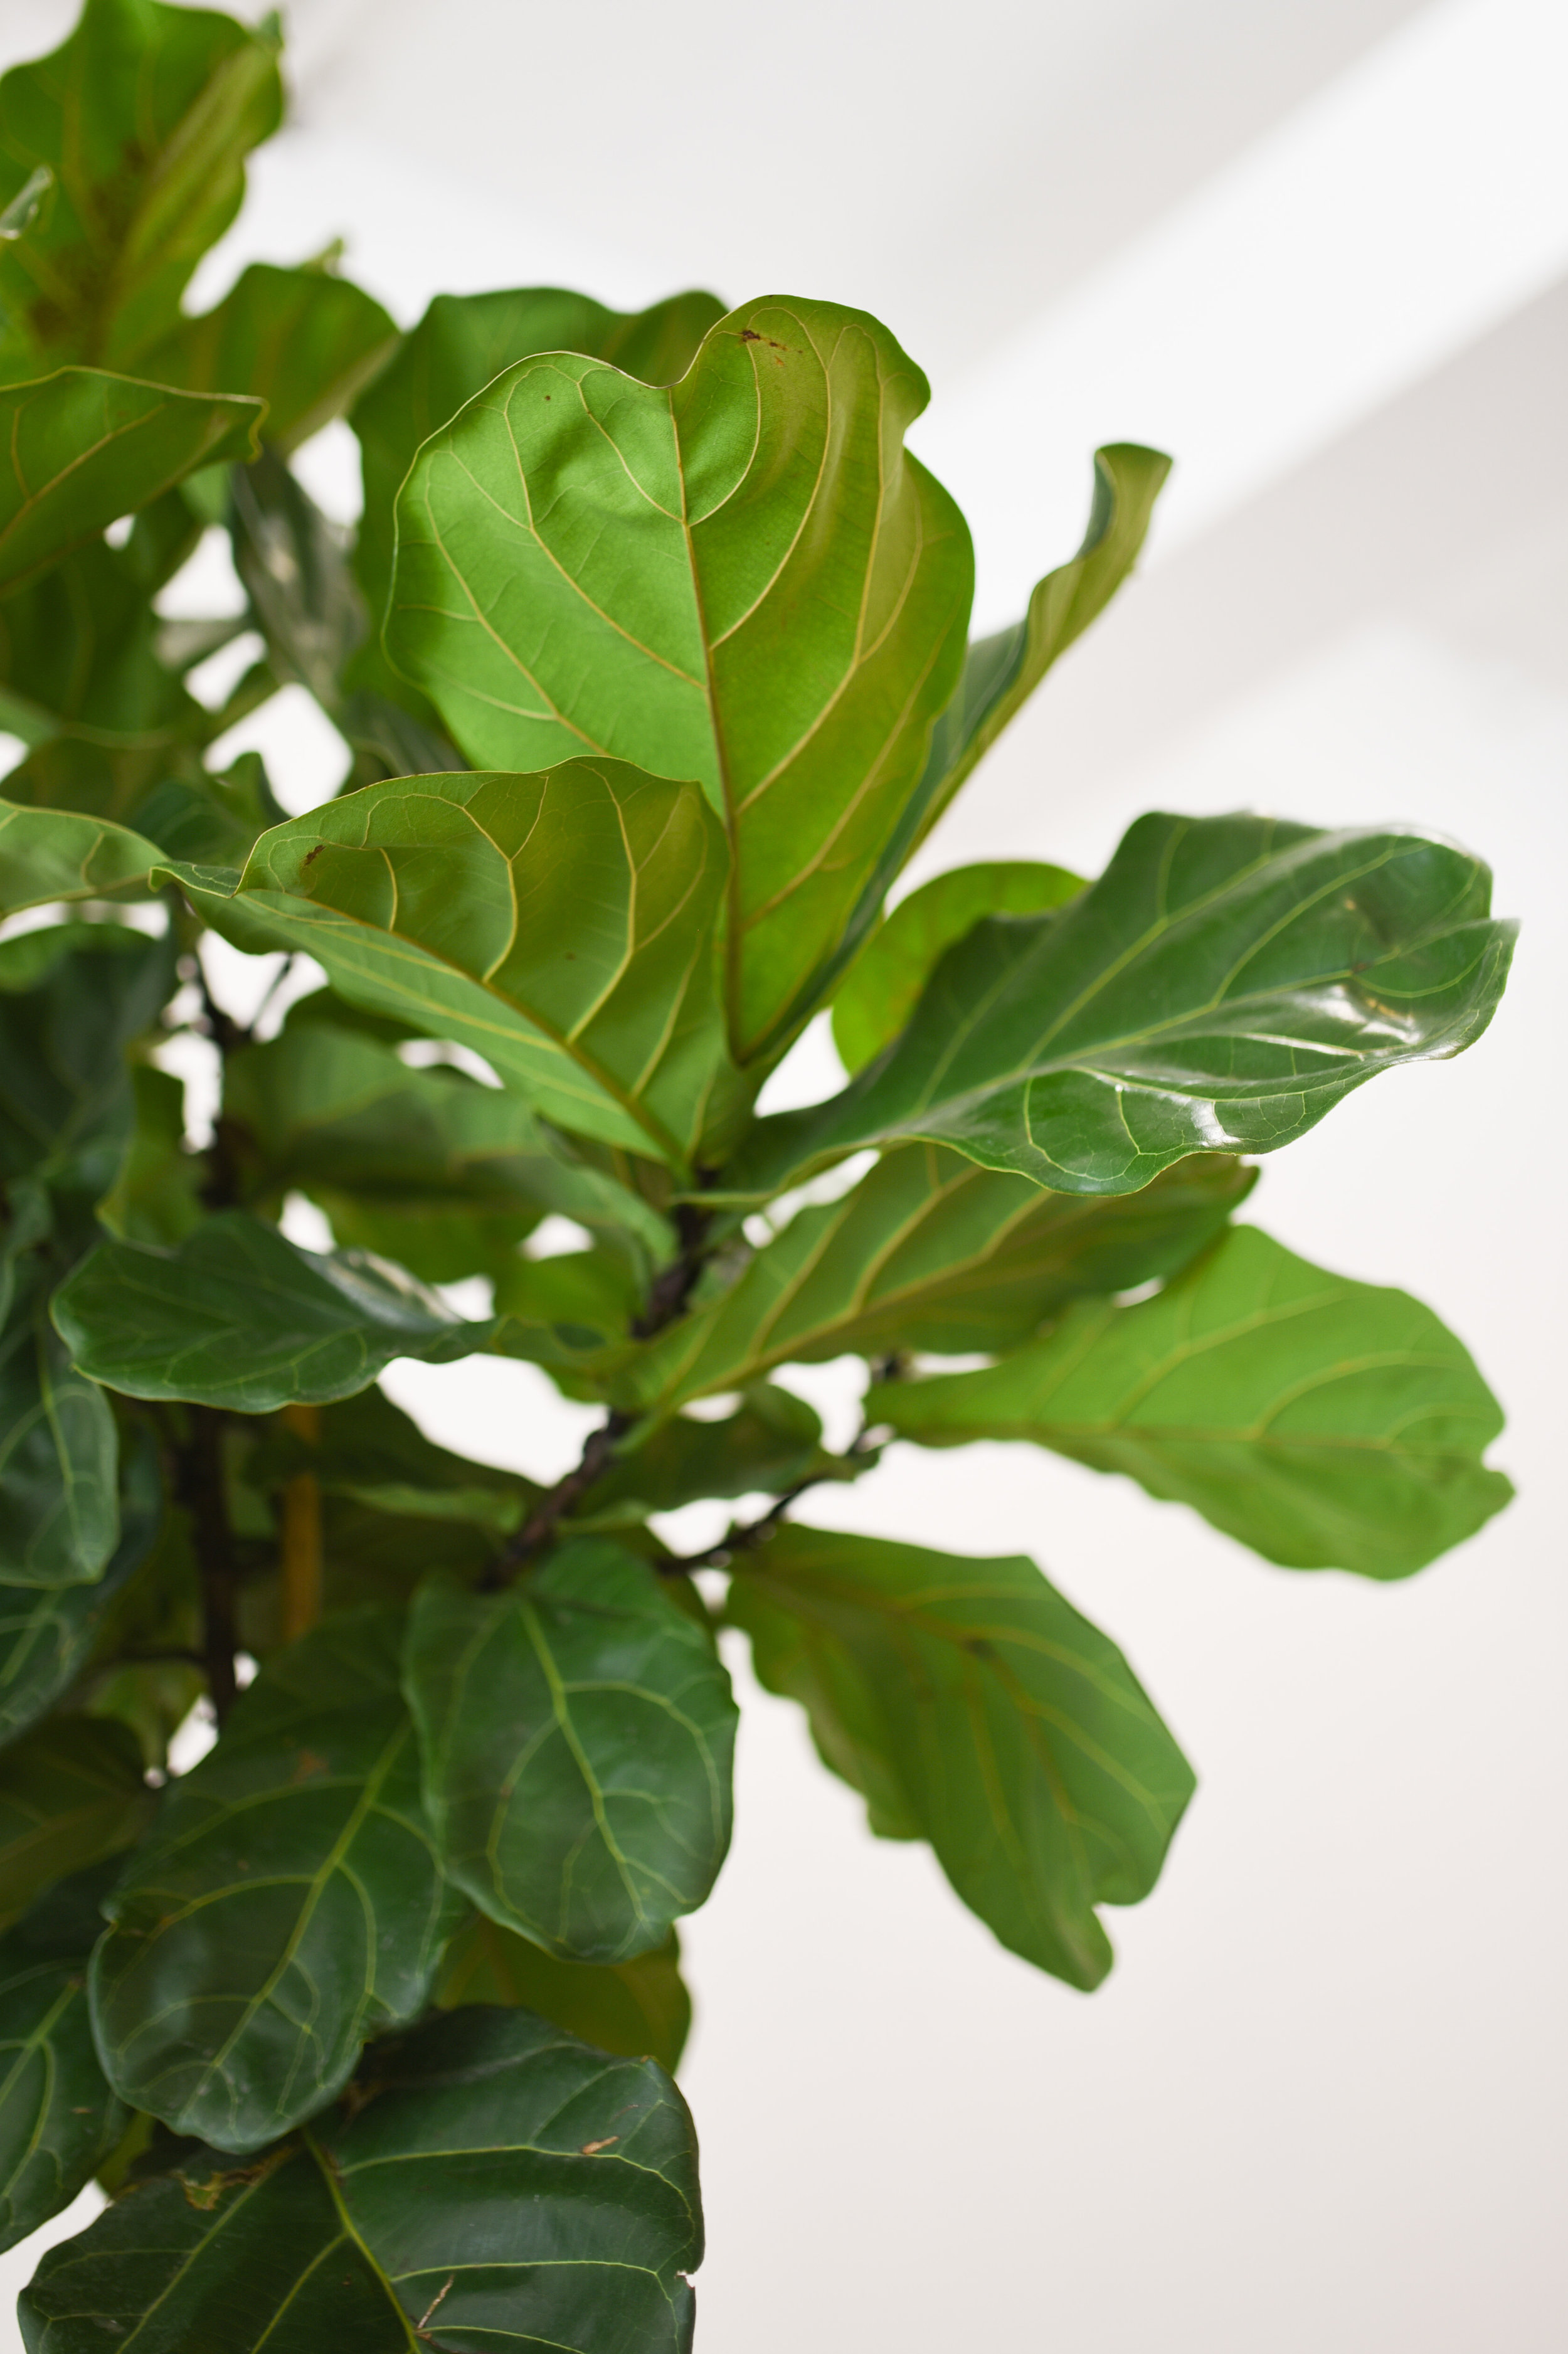 The leaves of Ficus Lyrata can be delicate, but so pretty!